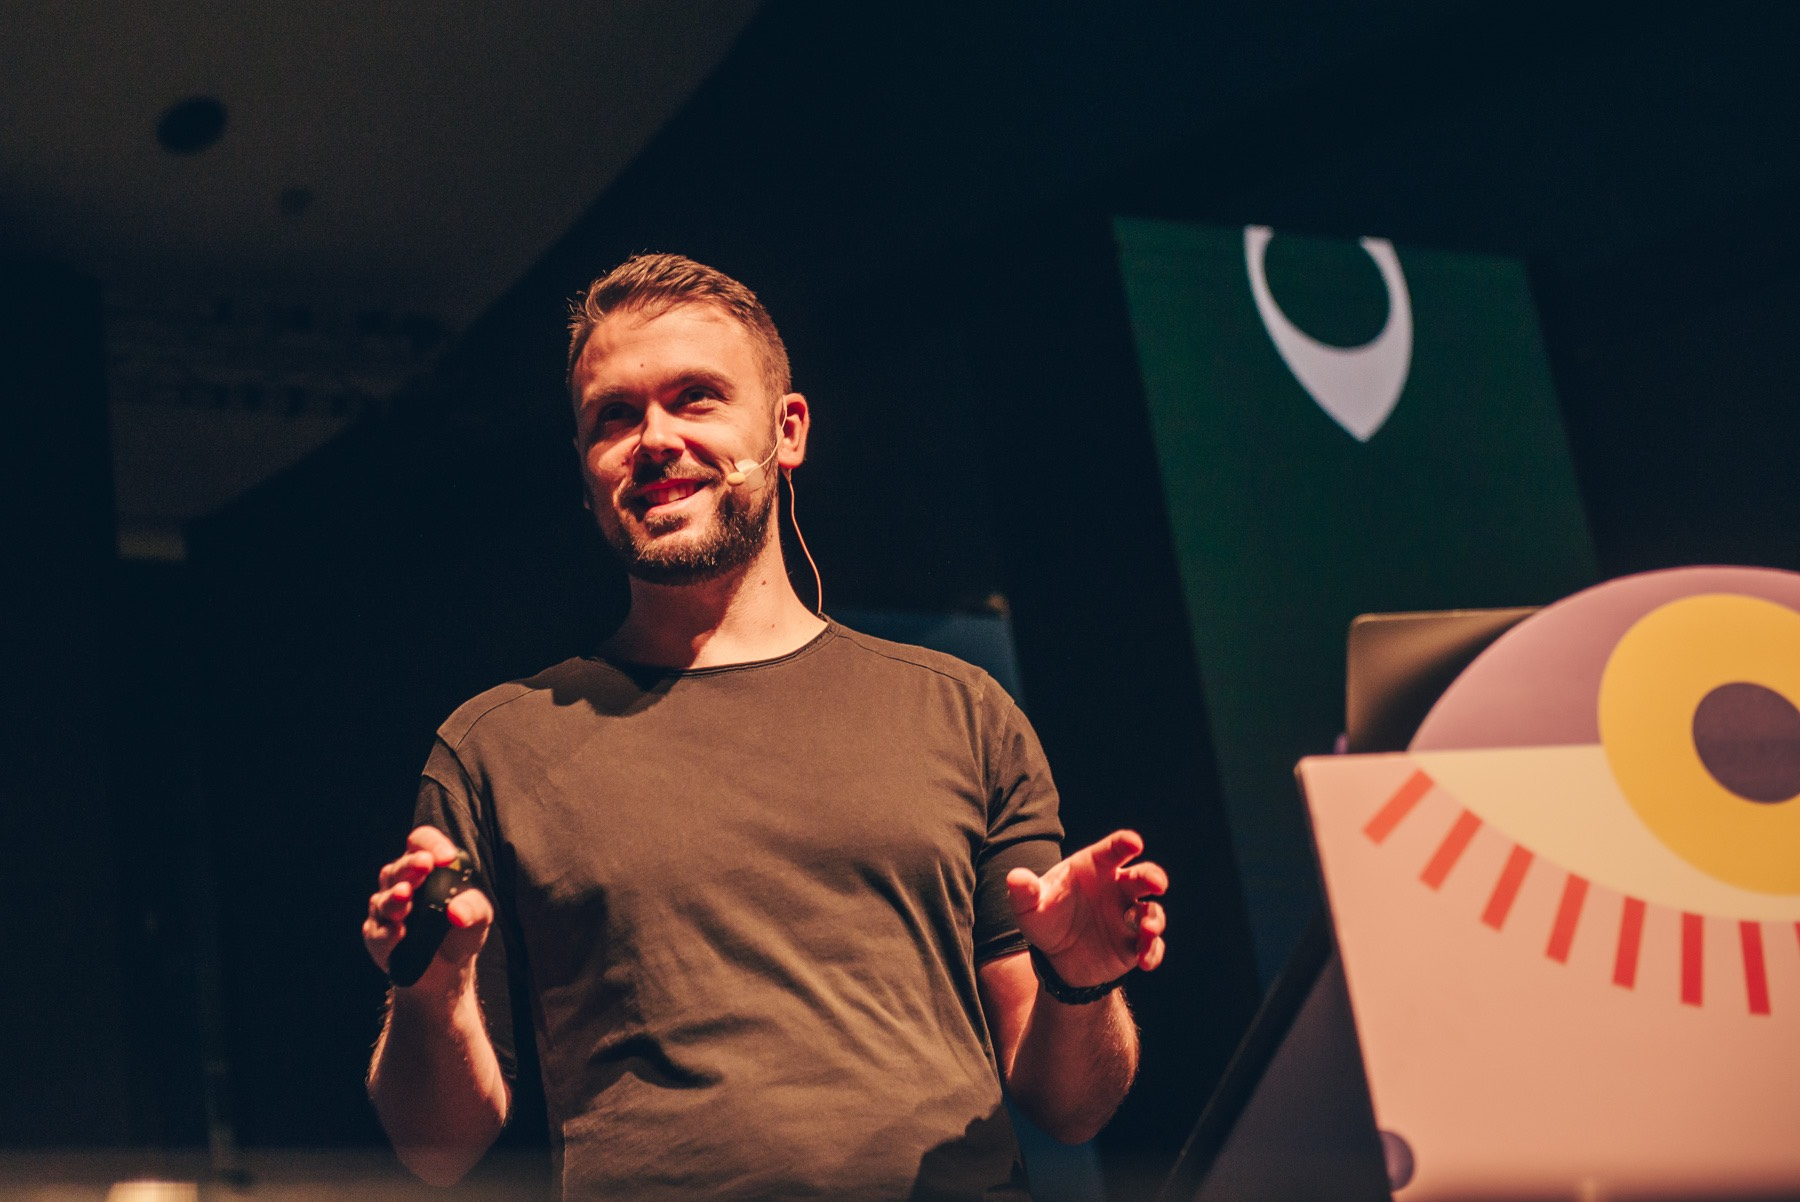 Marco Coppeto, Ueno at OFFF TLV. Photo: Chris Milne